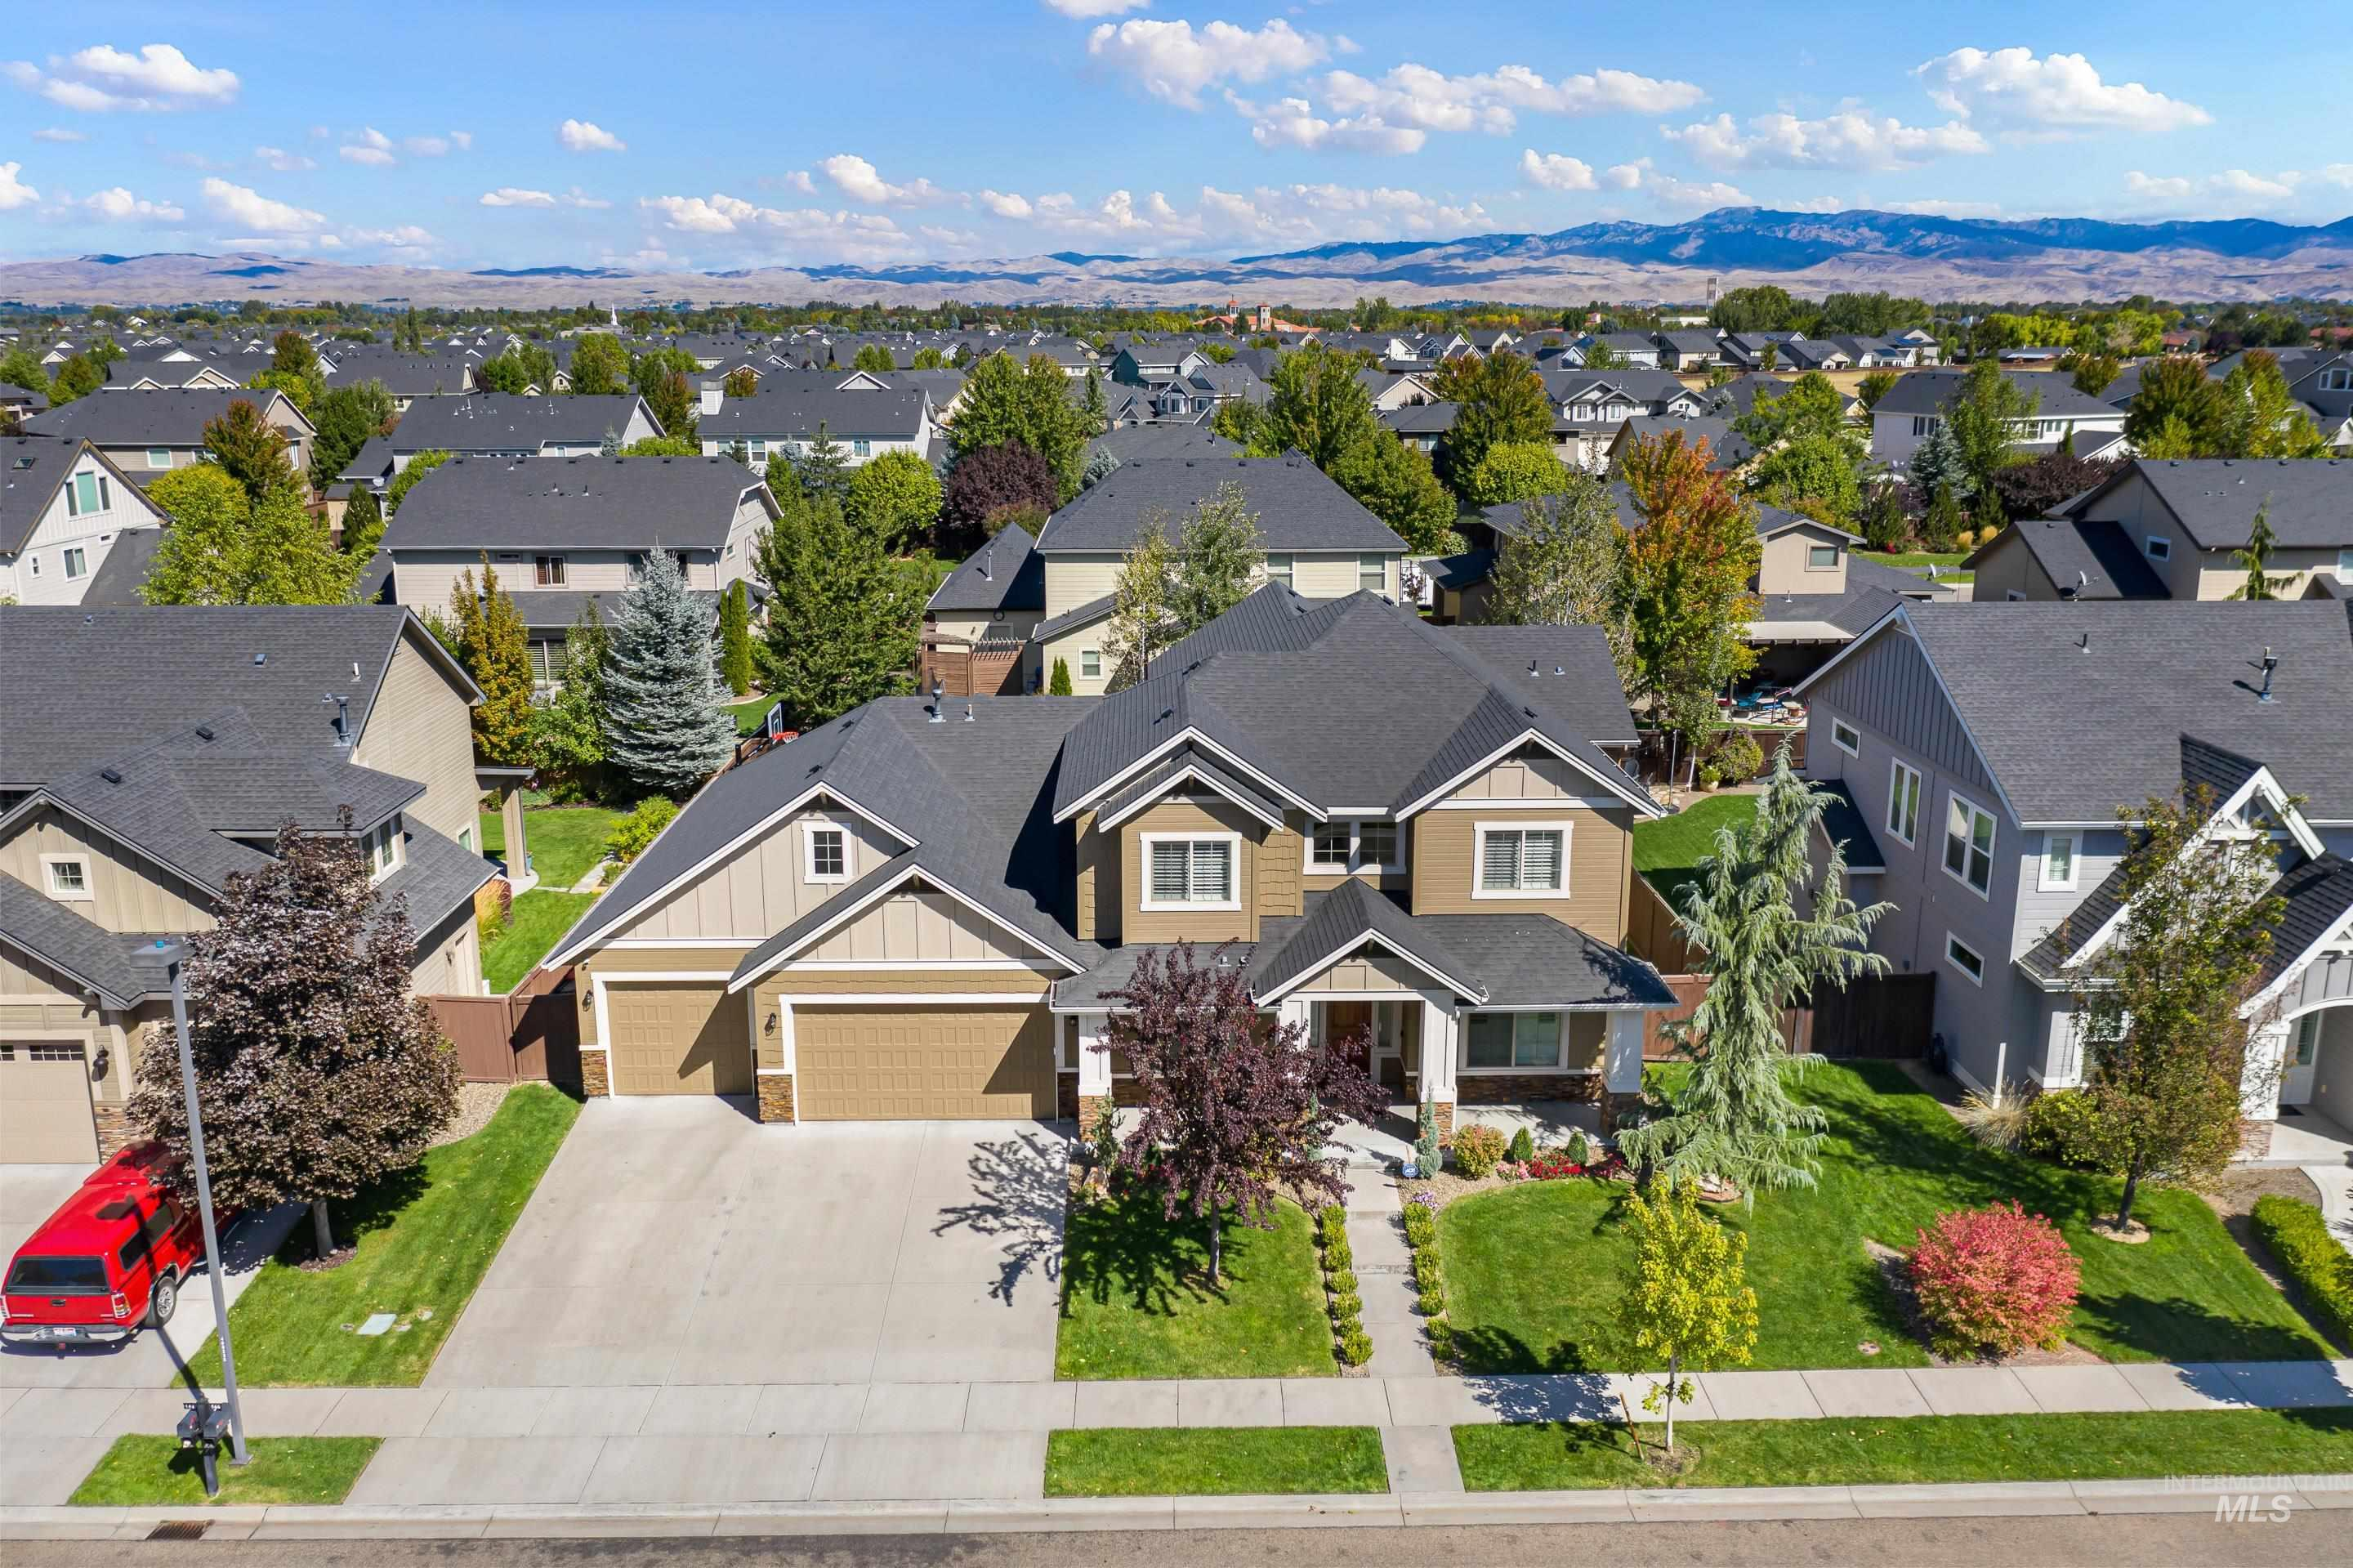 Welcome to your new home in Paramount Subdivision!! A premier master-planned community located in NW Meridian, Idaho, USA. Live in a neighborhood carefully designed to include education, recreation and retail amenities into the development. Club House with pools and walking trails steps away. 3,532 sq ft of pure living on almost ¼ of an acre! 5 Bed total with TWO principal bedrooms!! Beautiful finishes, craftsmanship & UPGRADES! TURN KEY READY this home features HARDWOOD FLOORS, walk-in closets in ALL bedrooms & lots of space for STORAGE! Office/Gym Room + Bonus Room + 4.5 Bathrooms + 4-Car Garage. Open concept kitchen, granite counters, brand new Water Softener, Gas Stove, Large Walk-In Pantry, Large Dining Area and Great Room w/Gas Fireplace. Two Outdoor Spaces in the Backyard and an Outdoor BASKETBALL COURT. The home exterior is newly painted and landscaping remodeled within the last year. NE facing backyard with large covered back patio. Elementary School in neighborhood! Near schools, shopping, & dining! - Denisse S Macias, Voice: 208-859-2714, Berkshire Hathaway HomeServices Silverhawk Realty Ada County, Main: 208-888-4128, https://denissemacias.com